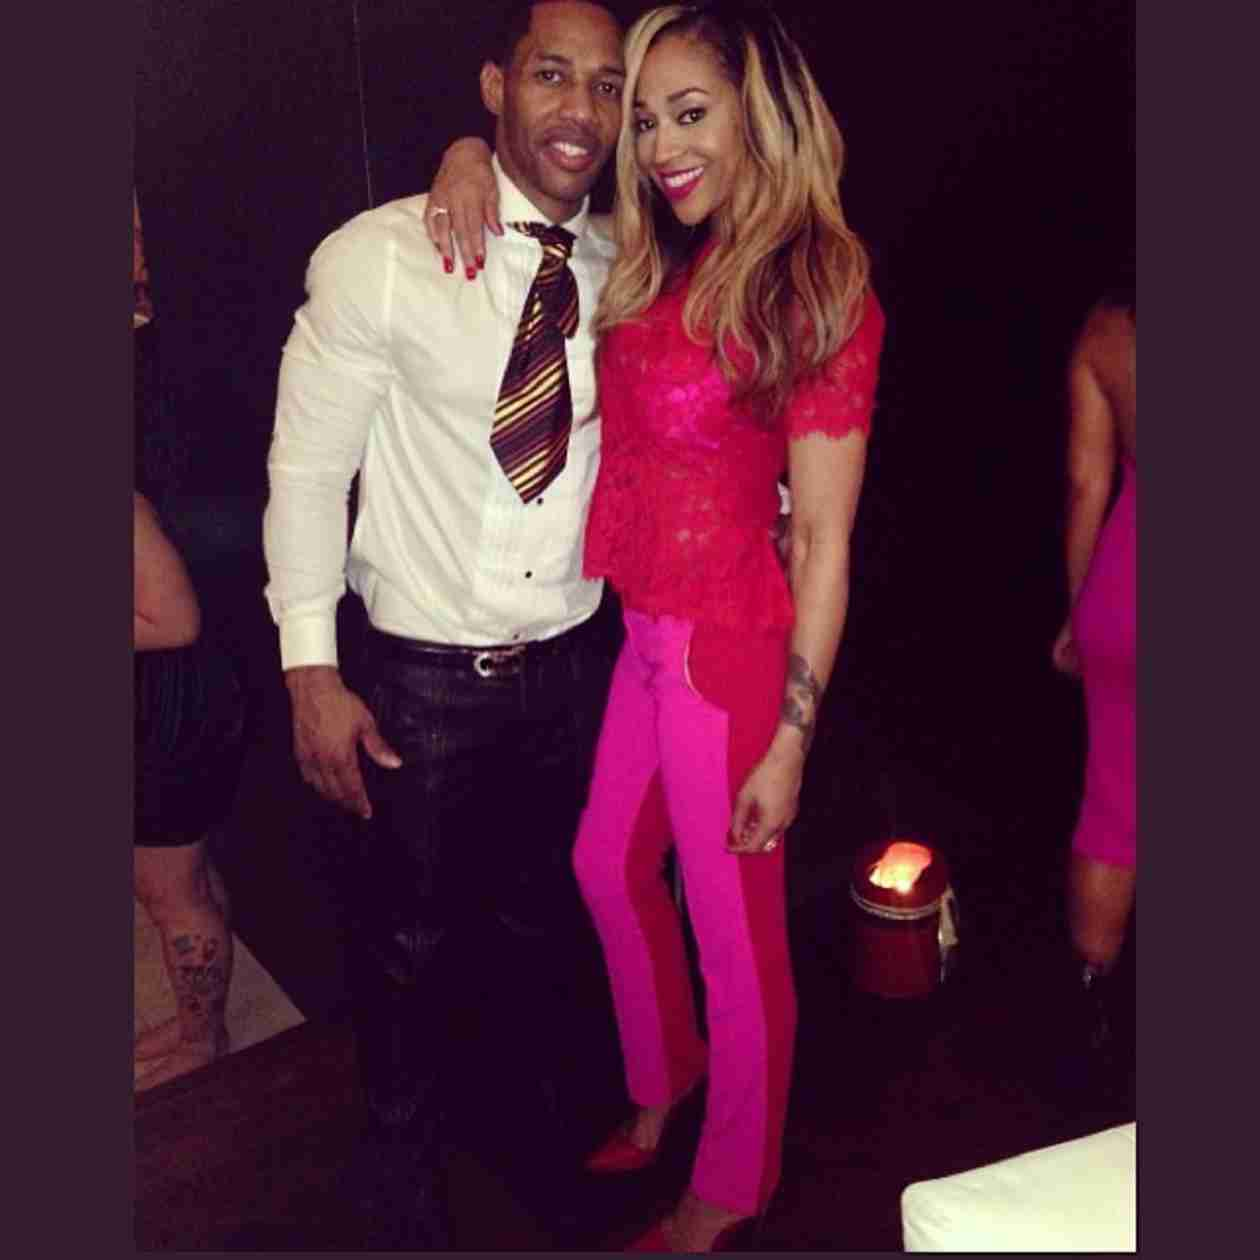 Have Mimi Faust and Nikko Called It Quits?